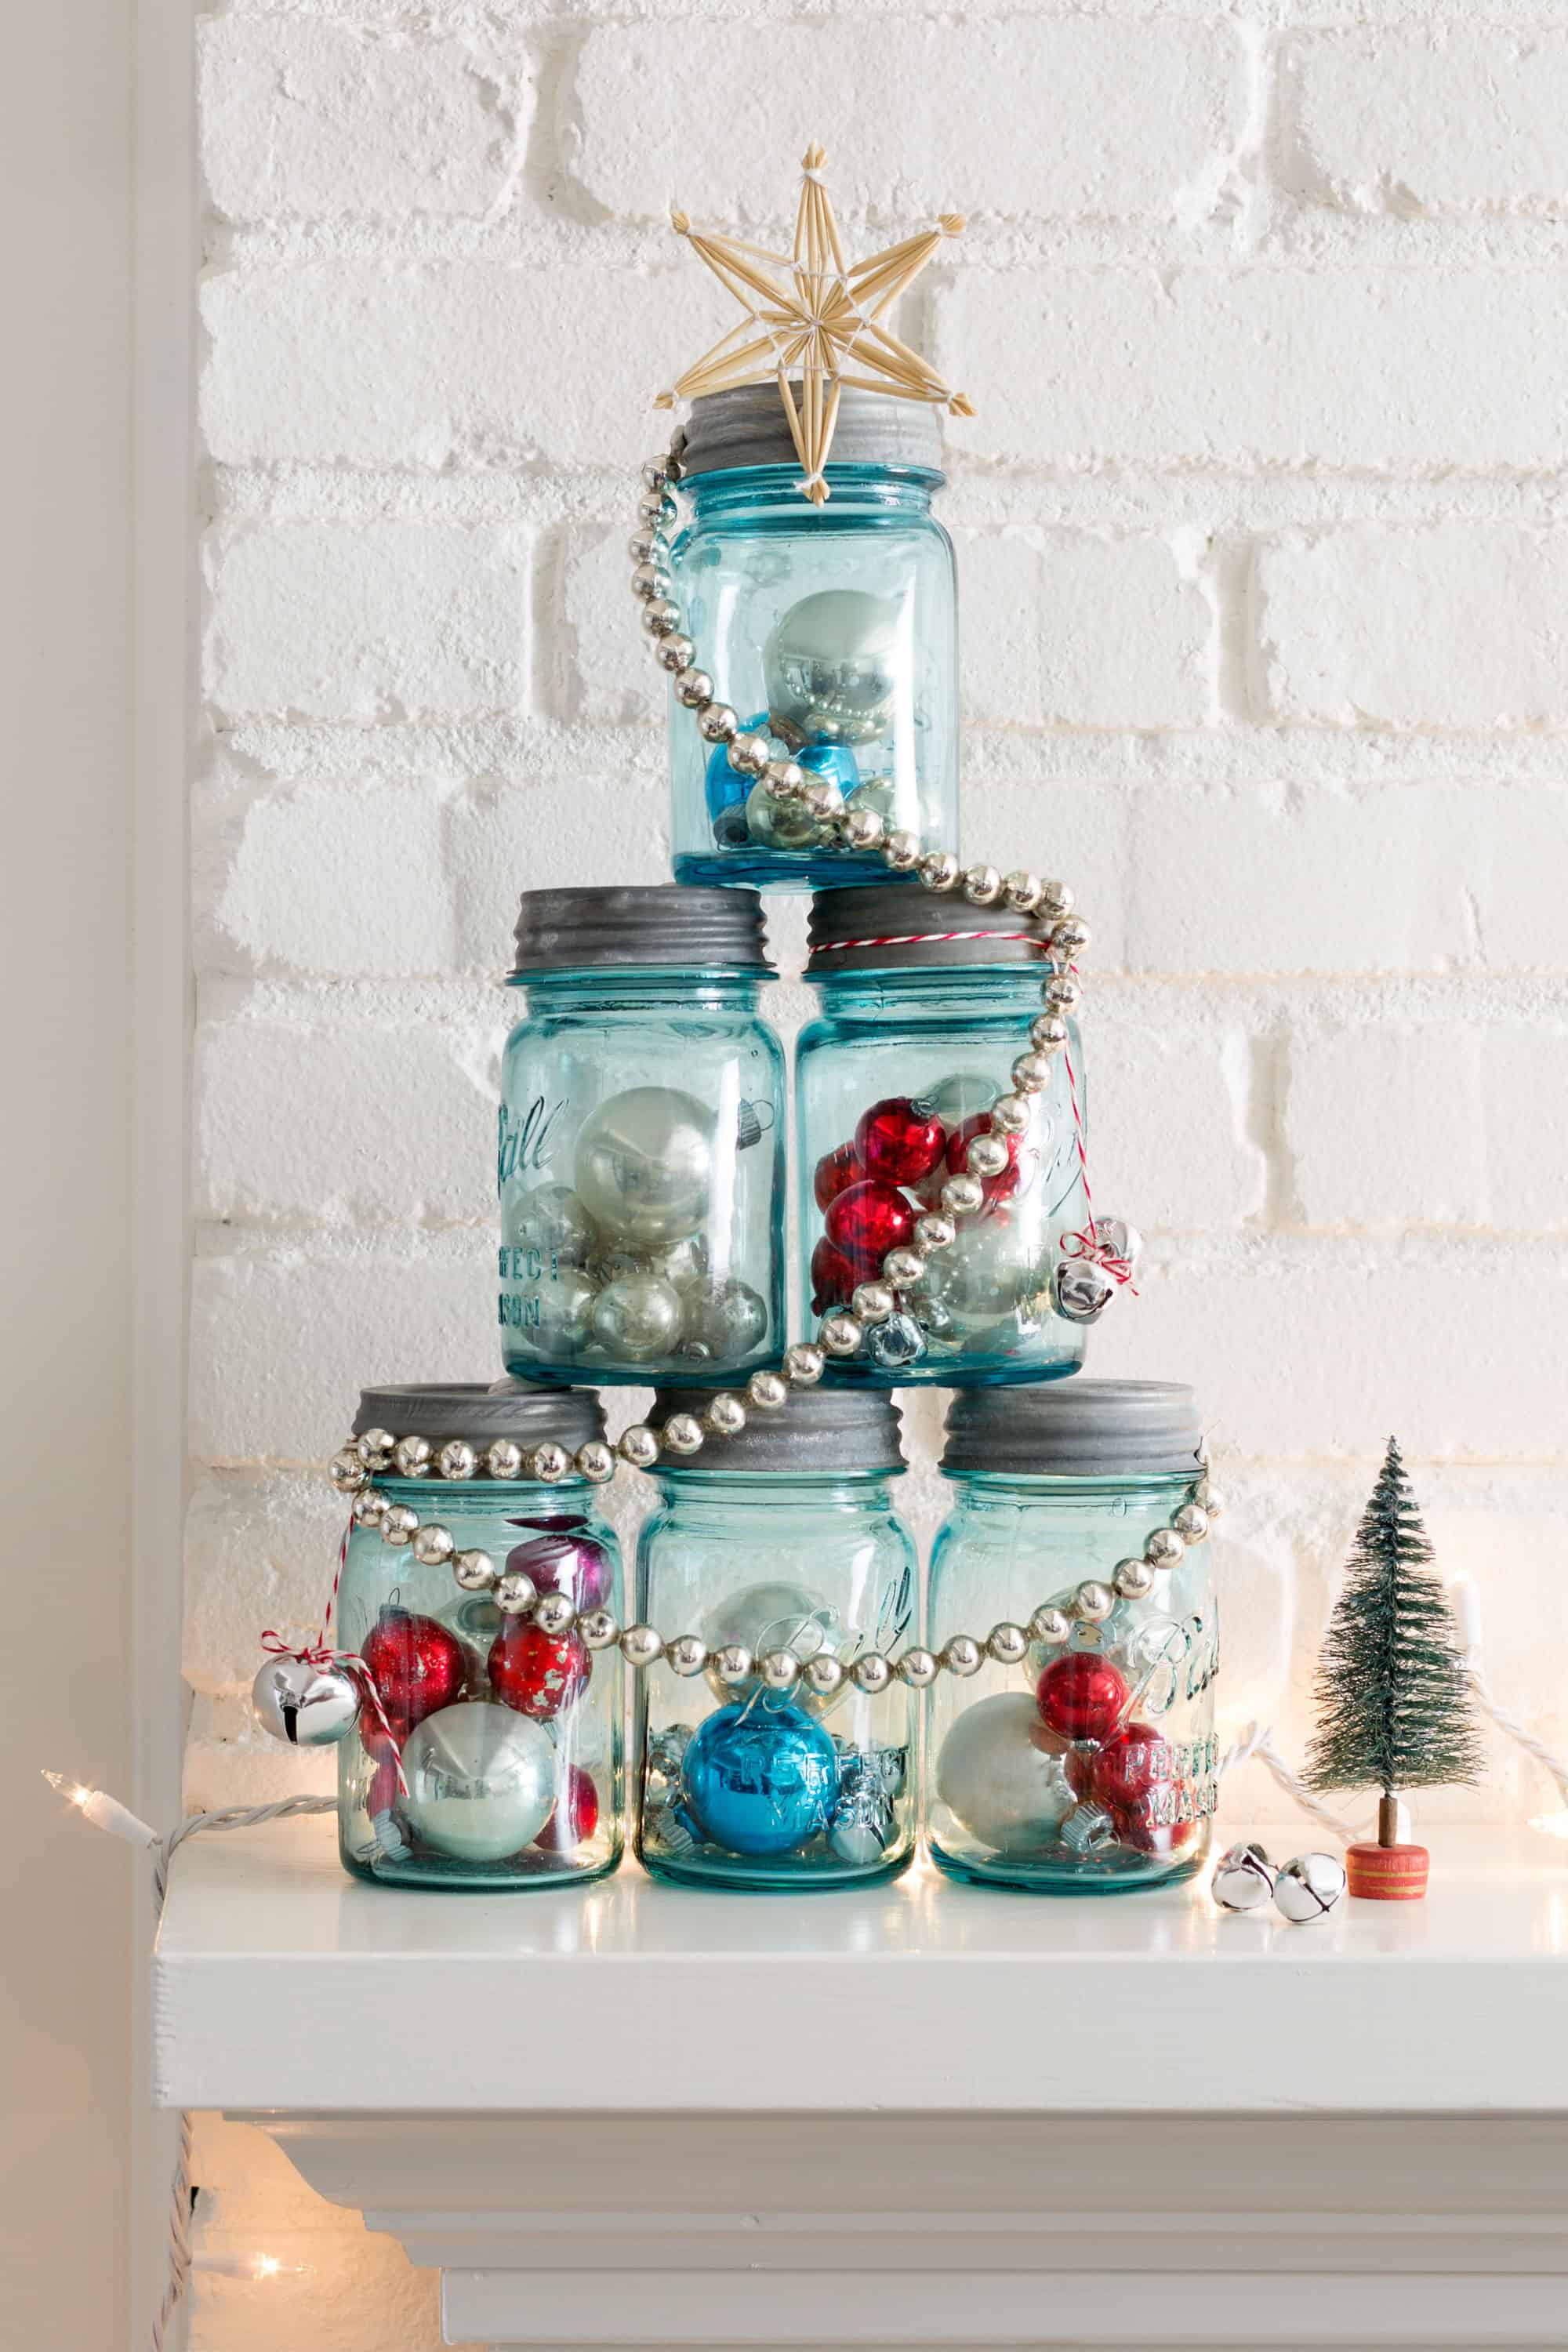 homeamde christmas decor Vintage Christmas Decorations That Are Making a Huge Comeback